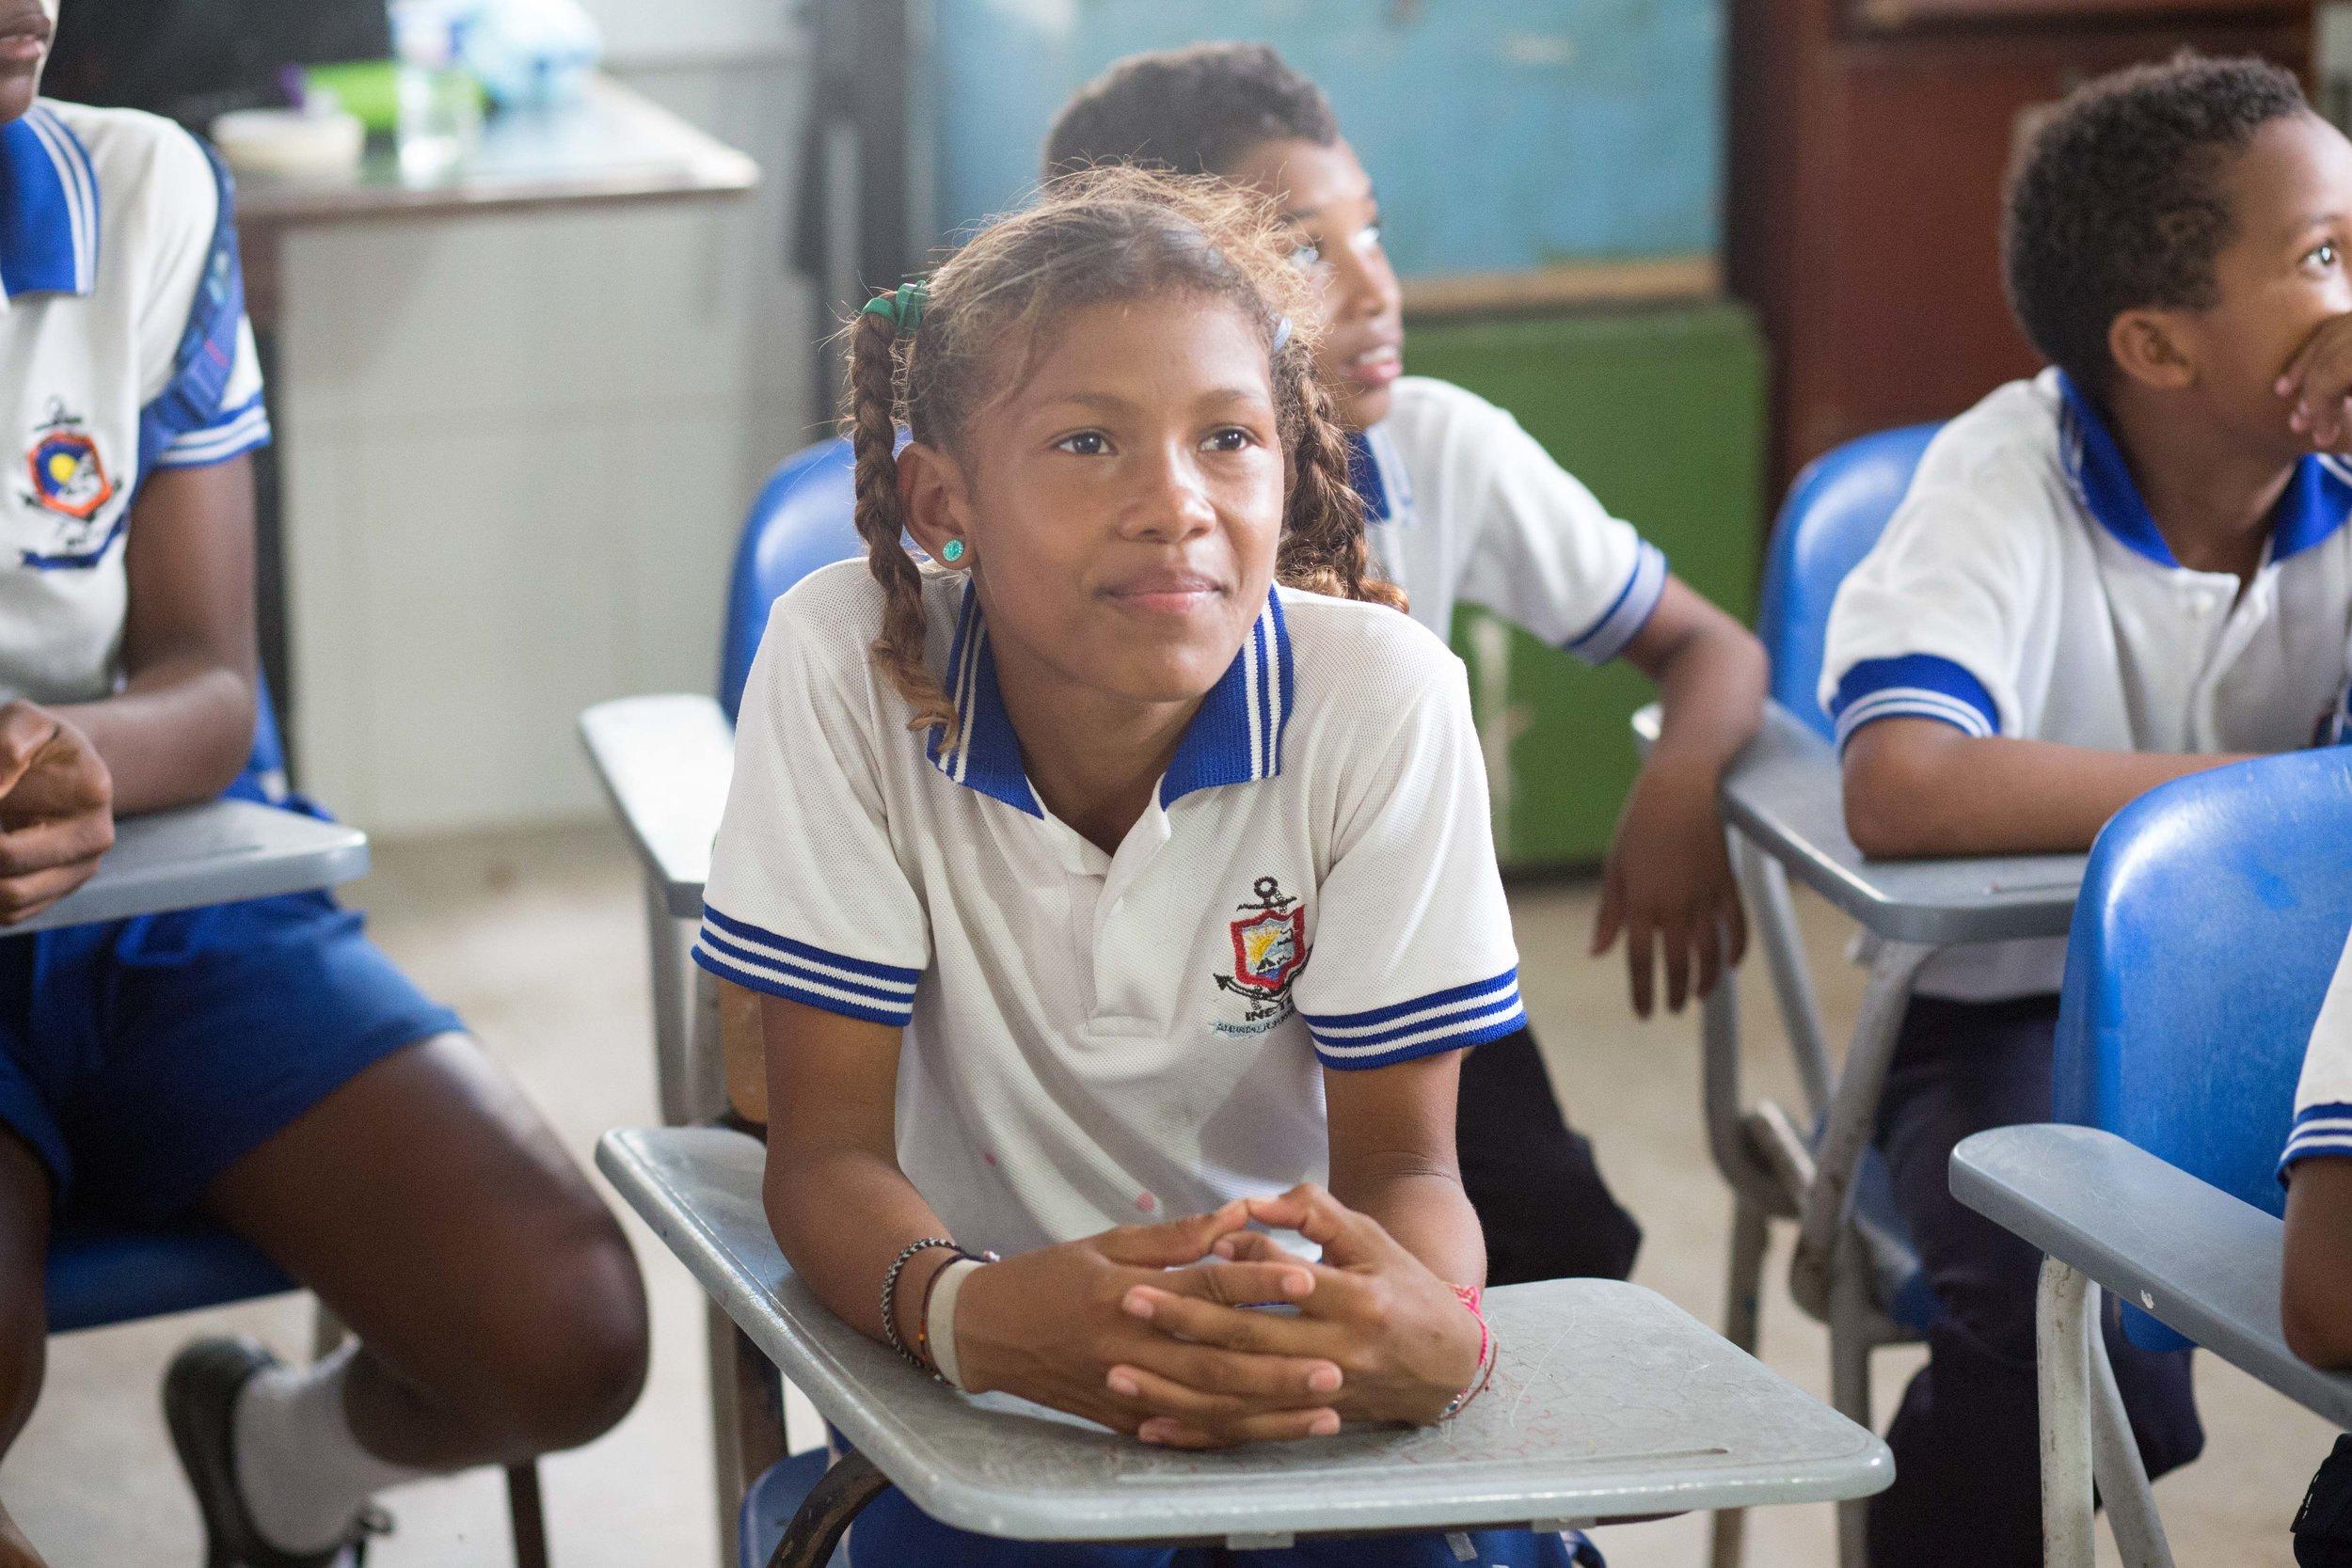 EMPOWERMENT - Thanks to your support of our recent Flagship Project in Colombia and to their hard work, we empowered one group of kids to fund priority supplies for themselves and their peers.Watch and see their excitement and pride firsthand.